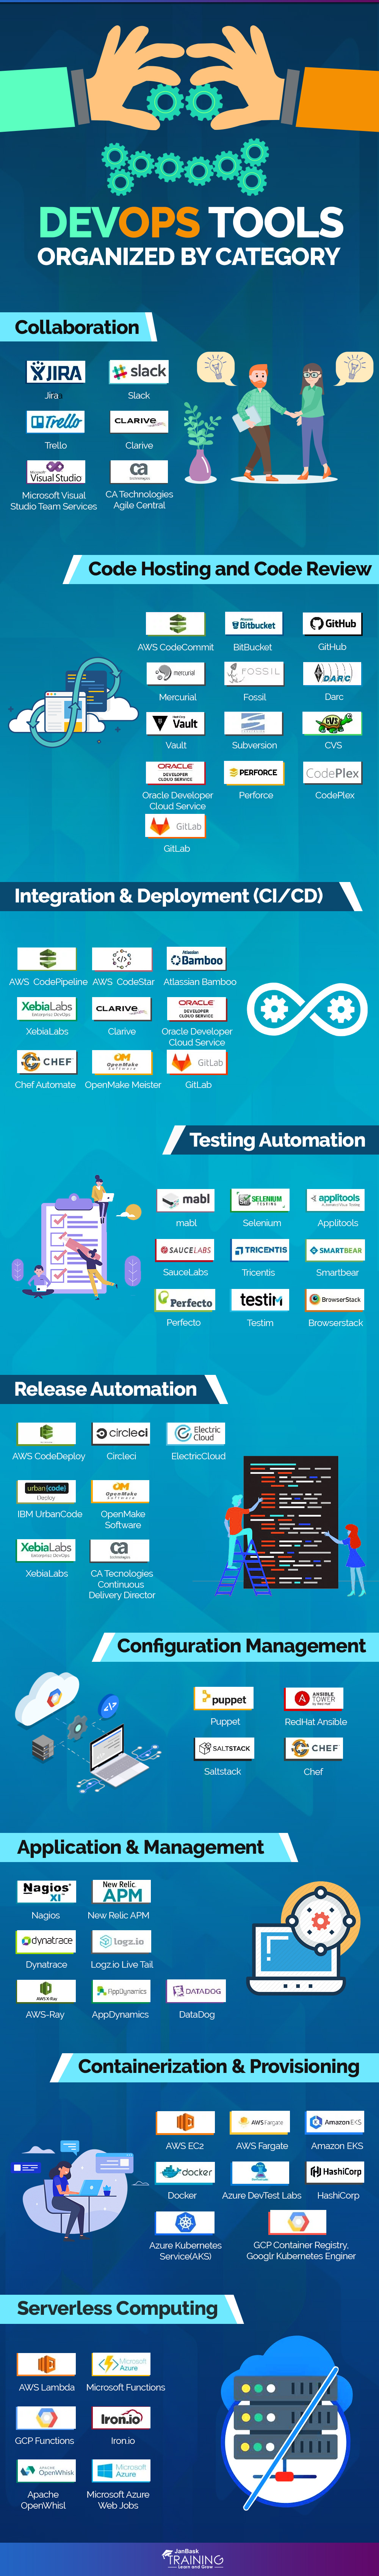 What Is Devops Tools? Top 12 DevOps Automation Tools